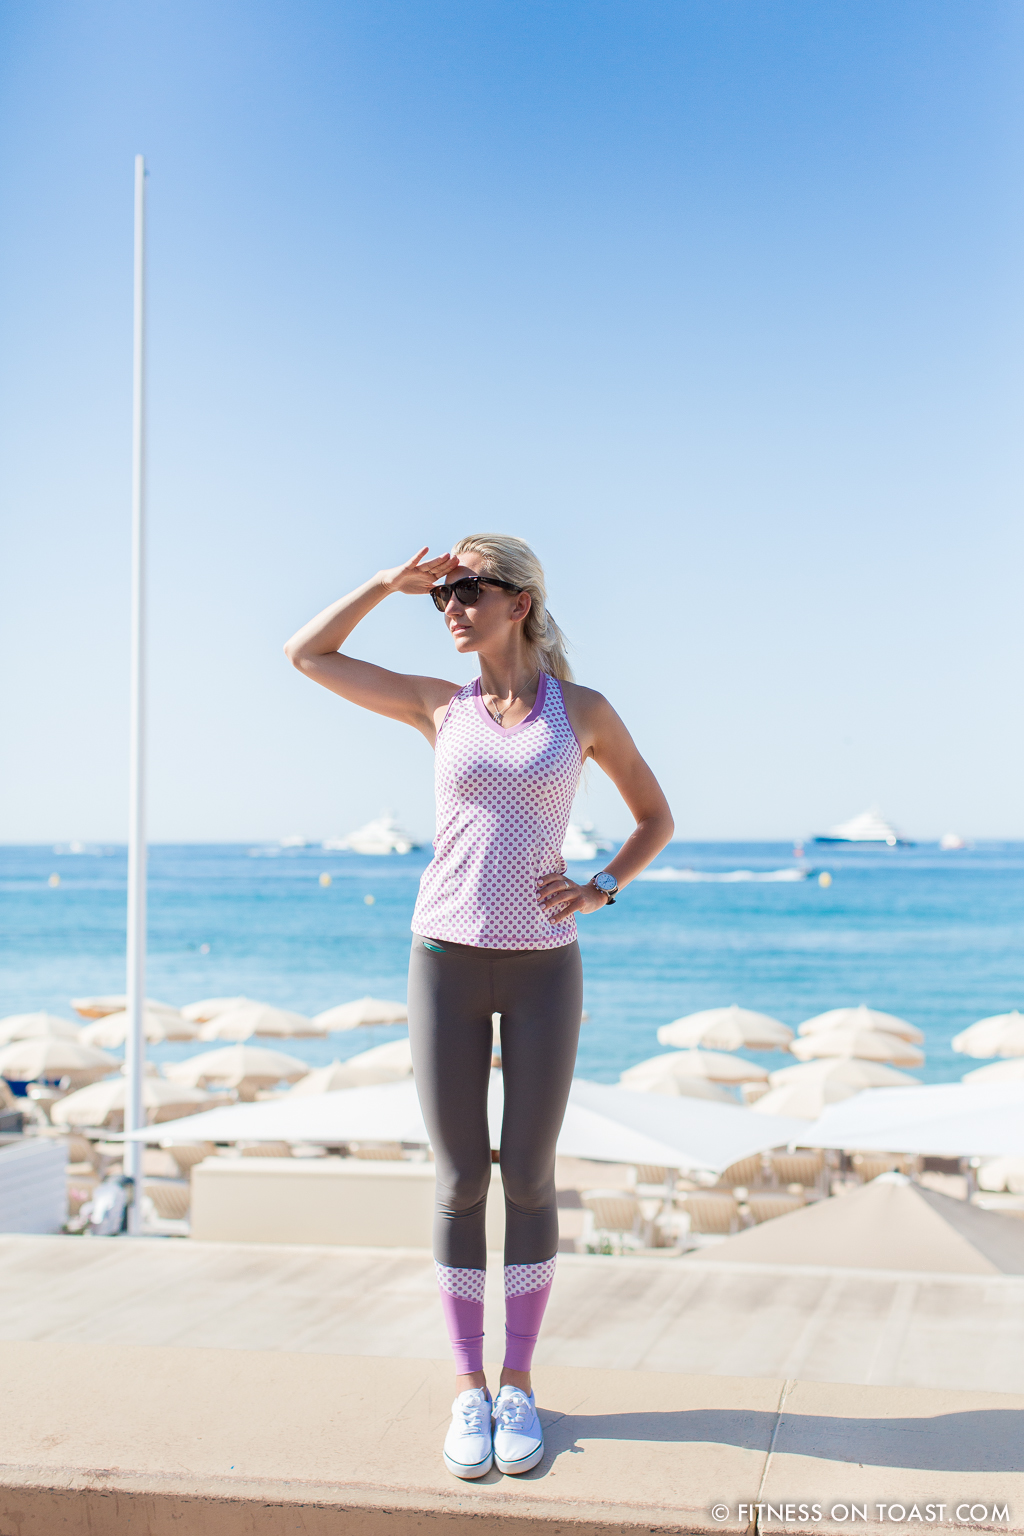 Vevie Hertford Cannes La Croisette Run Fitness On Toast Health Fashion Running Blog Faya -15